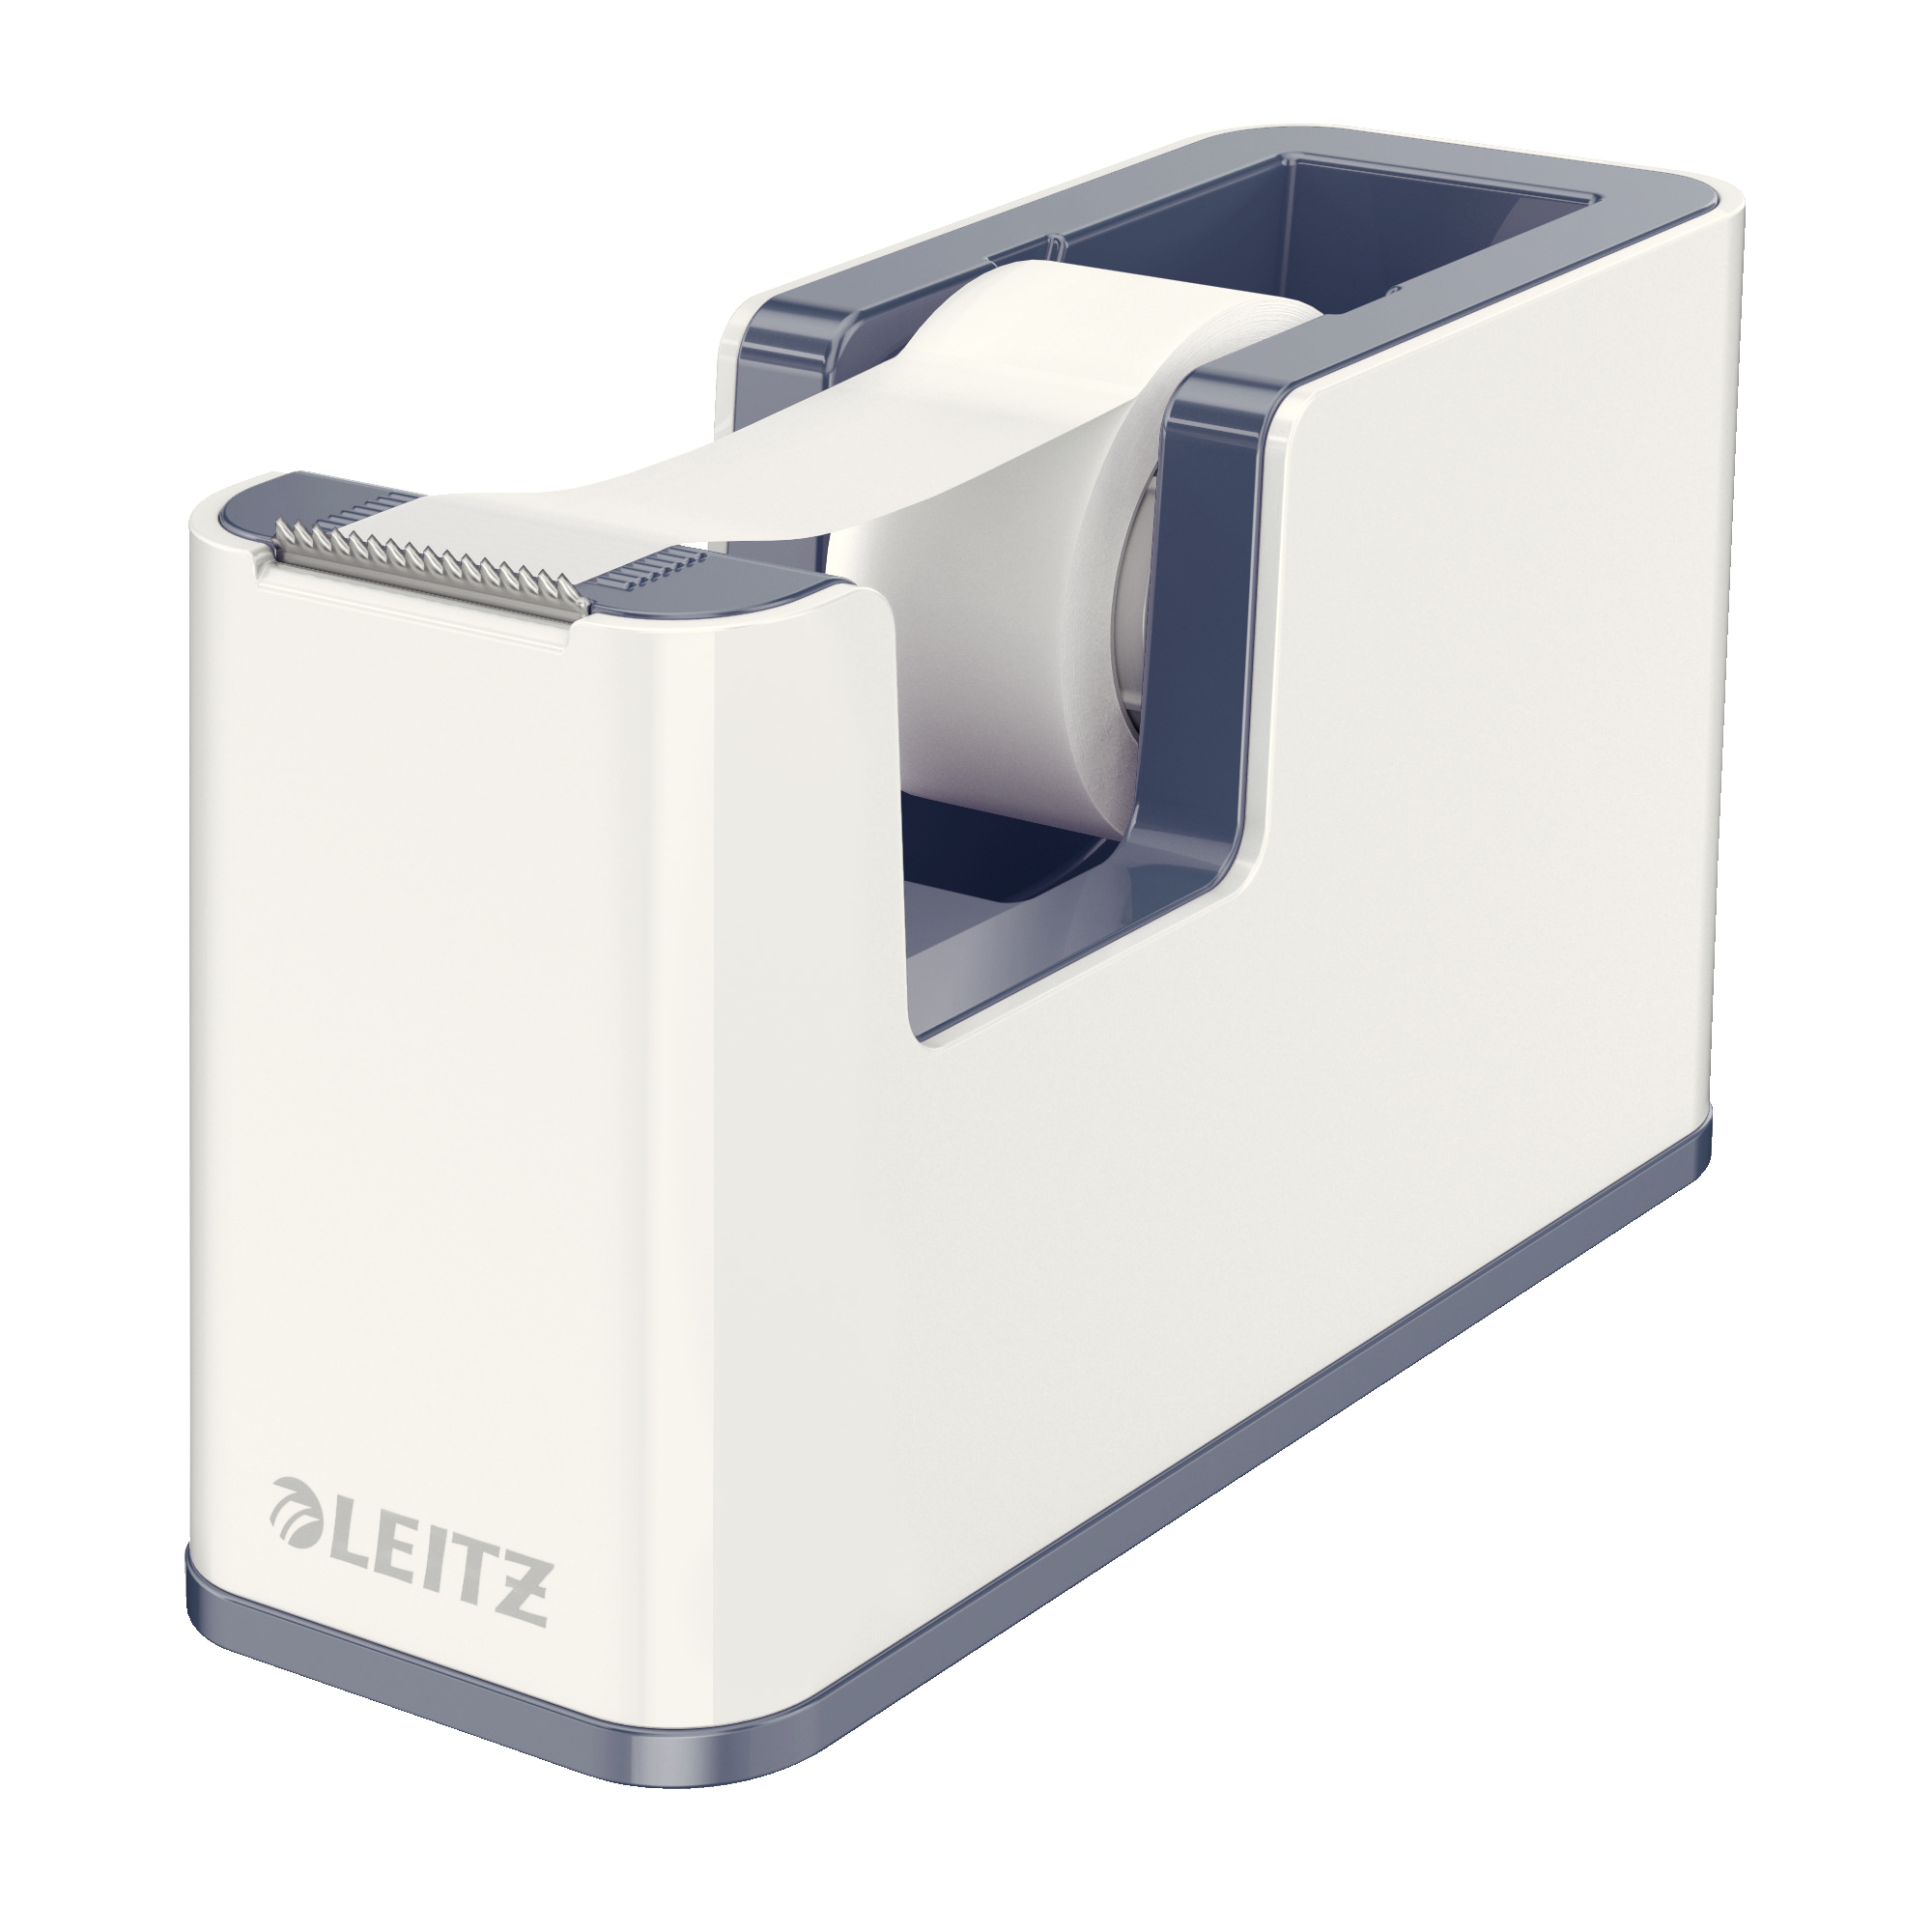 Tape dispensers Leitz Tape Dispenser WOW Including Tape for rolls 19mmx33m White Ref 53641001